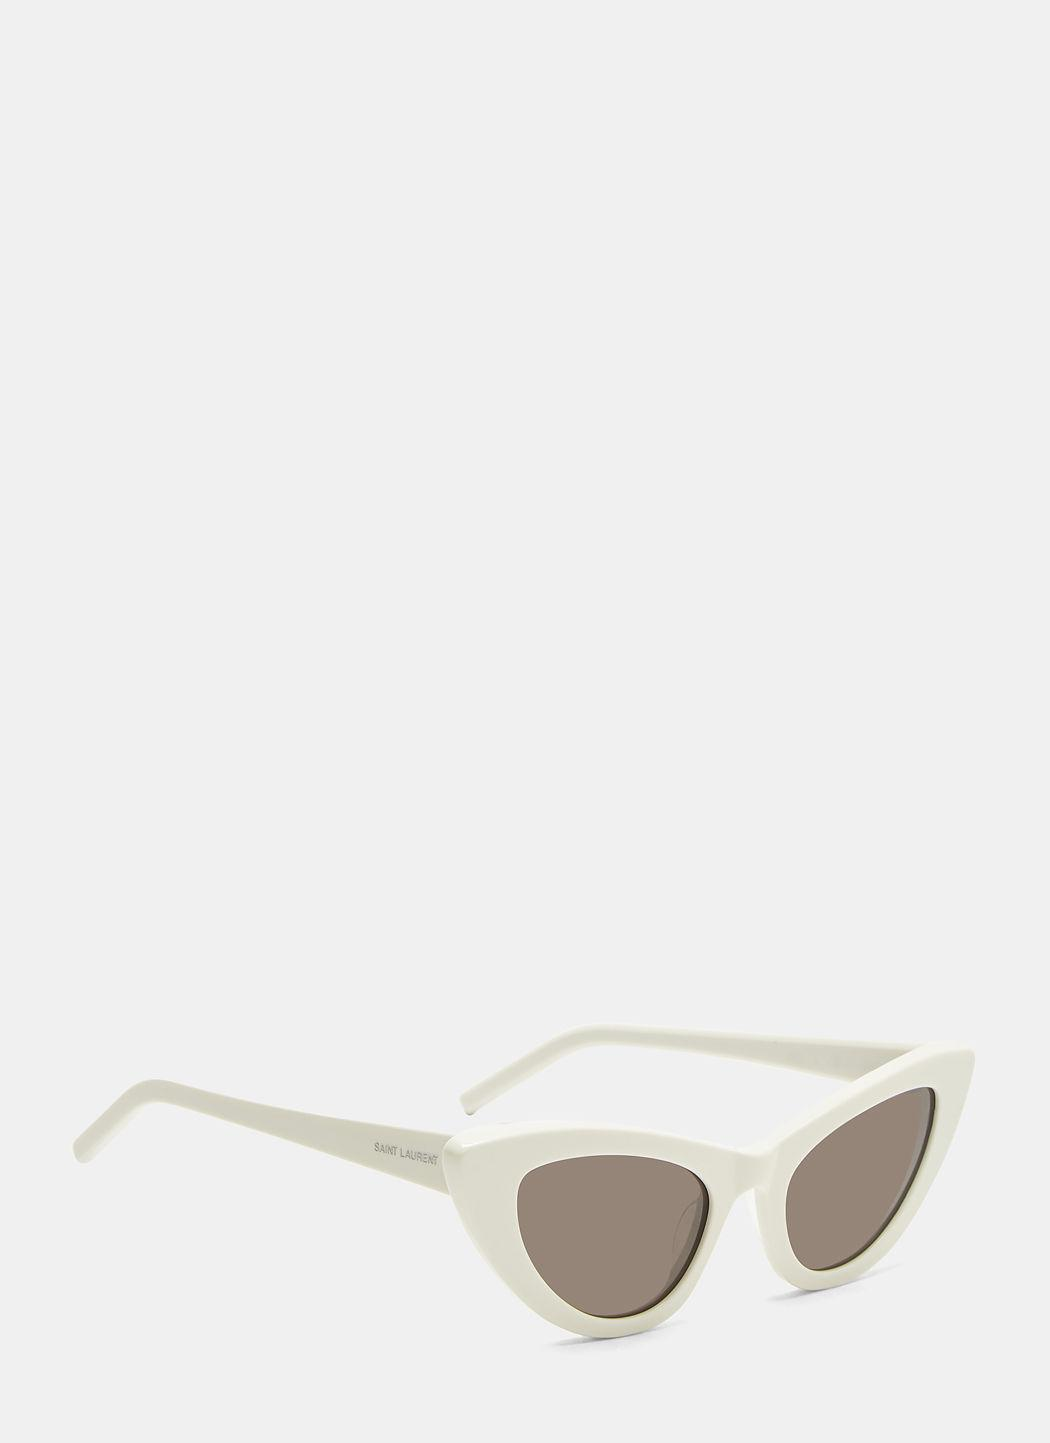 dce0a83956 Saint Laurent New Wave 213 Lily Sunglasses In White In 005 Ivory ...